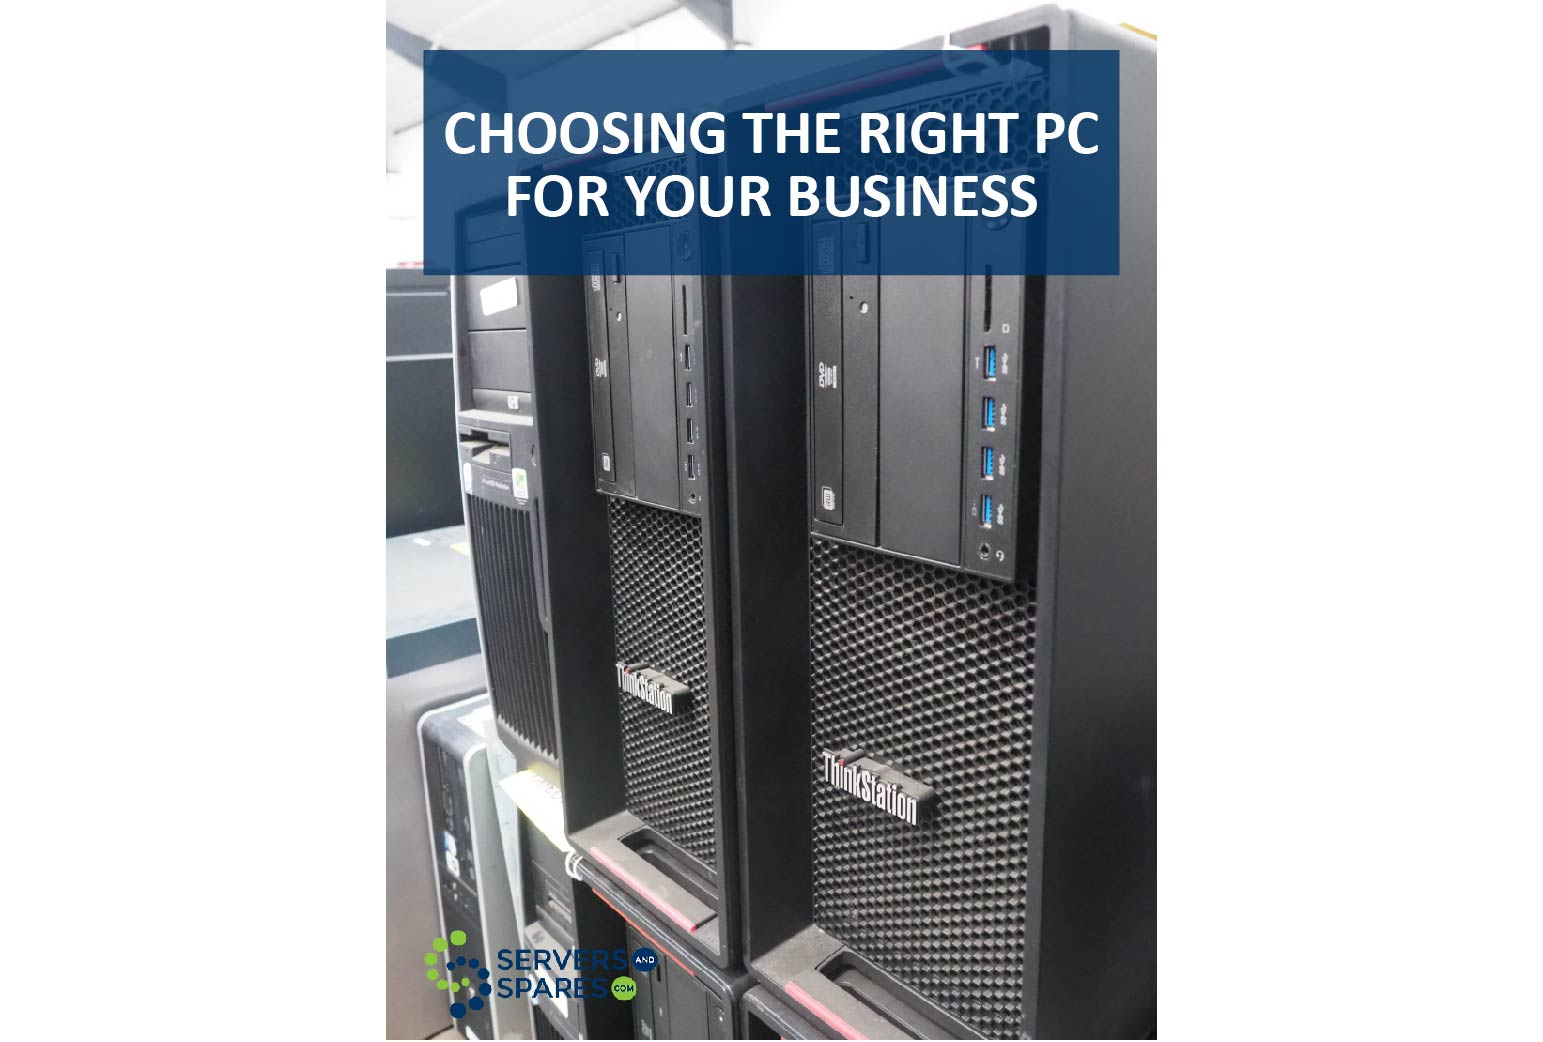 Choosing the right PC for your business